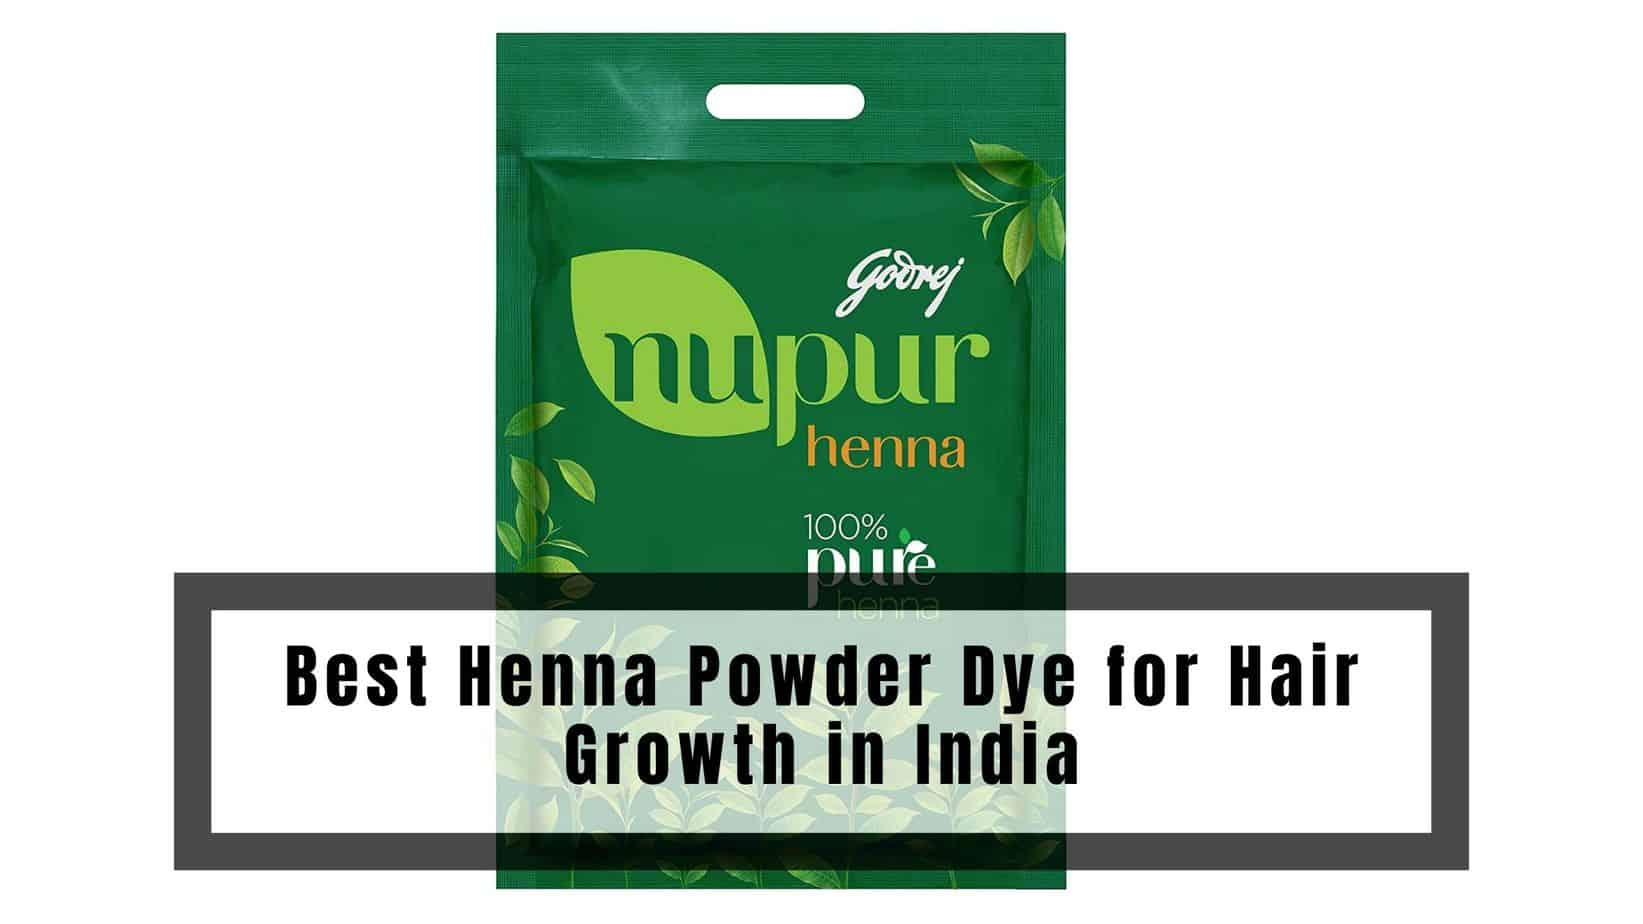 Best Henna Powder Dye for Hair Growth in India